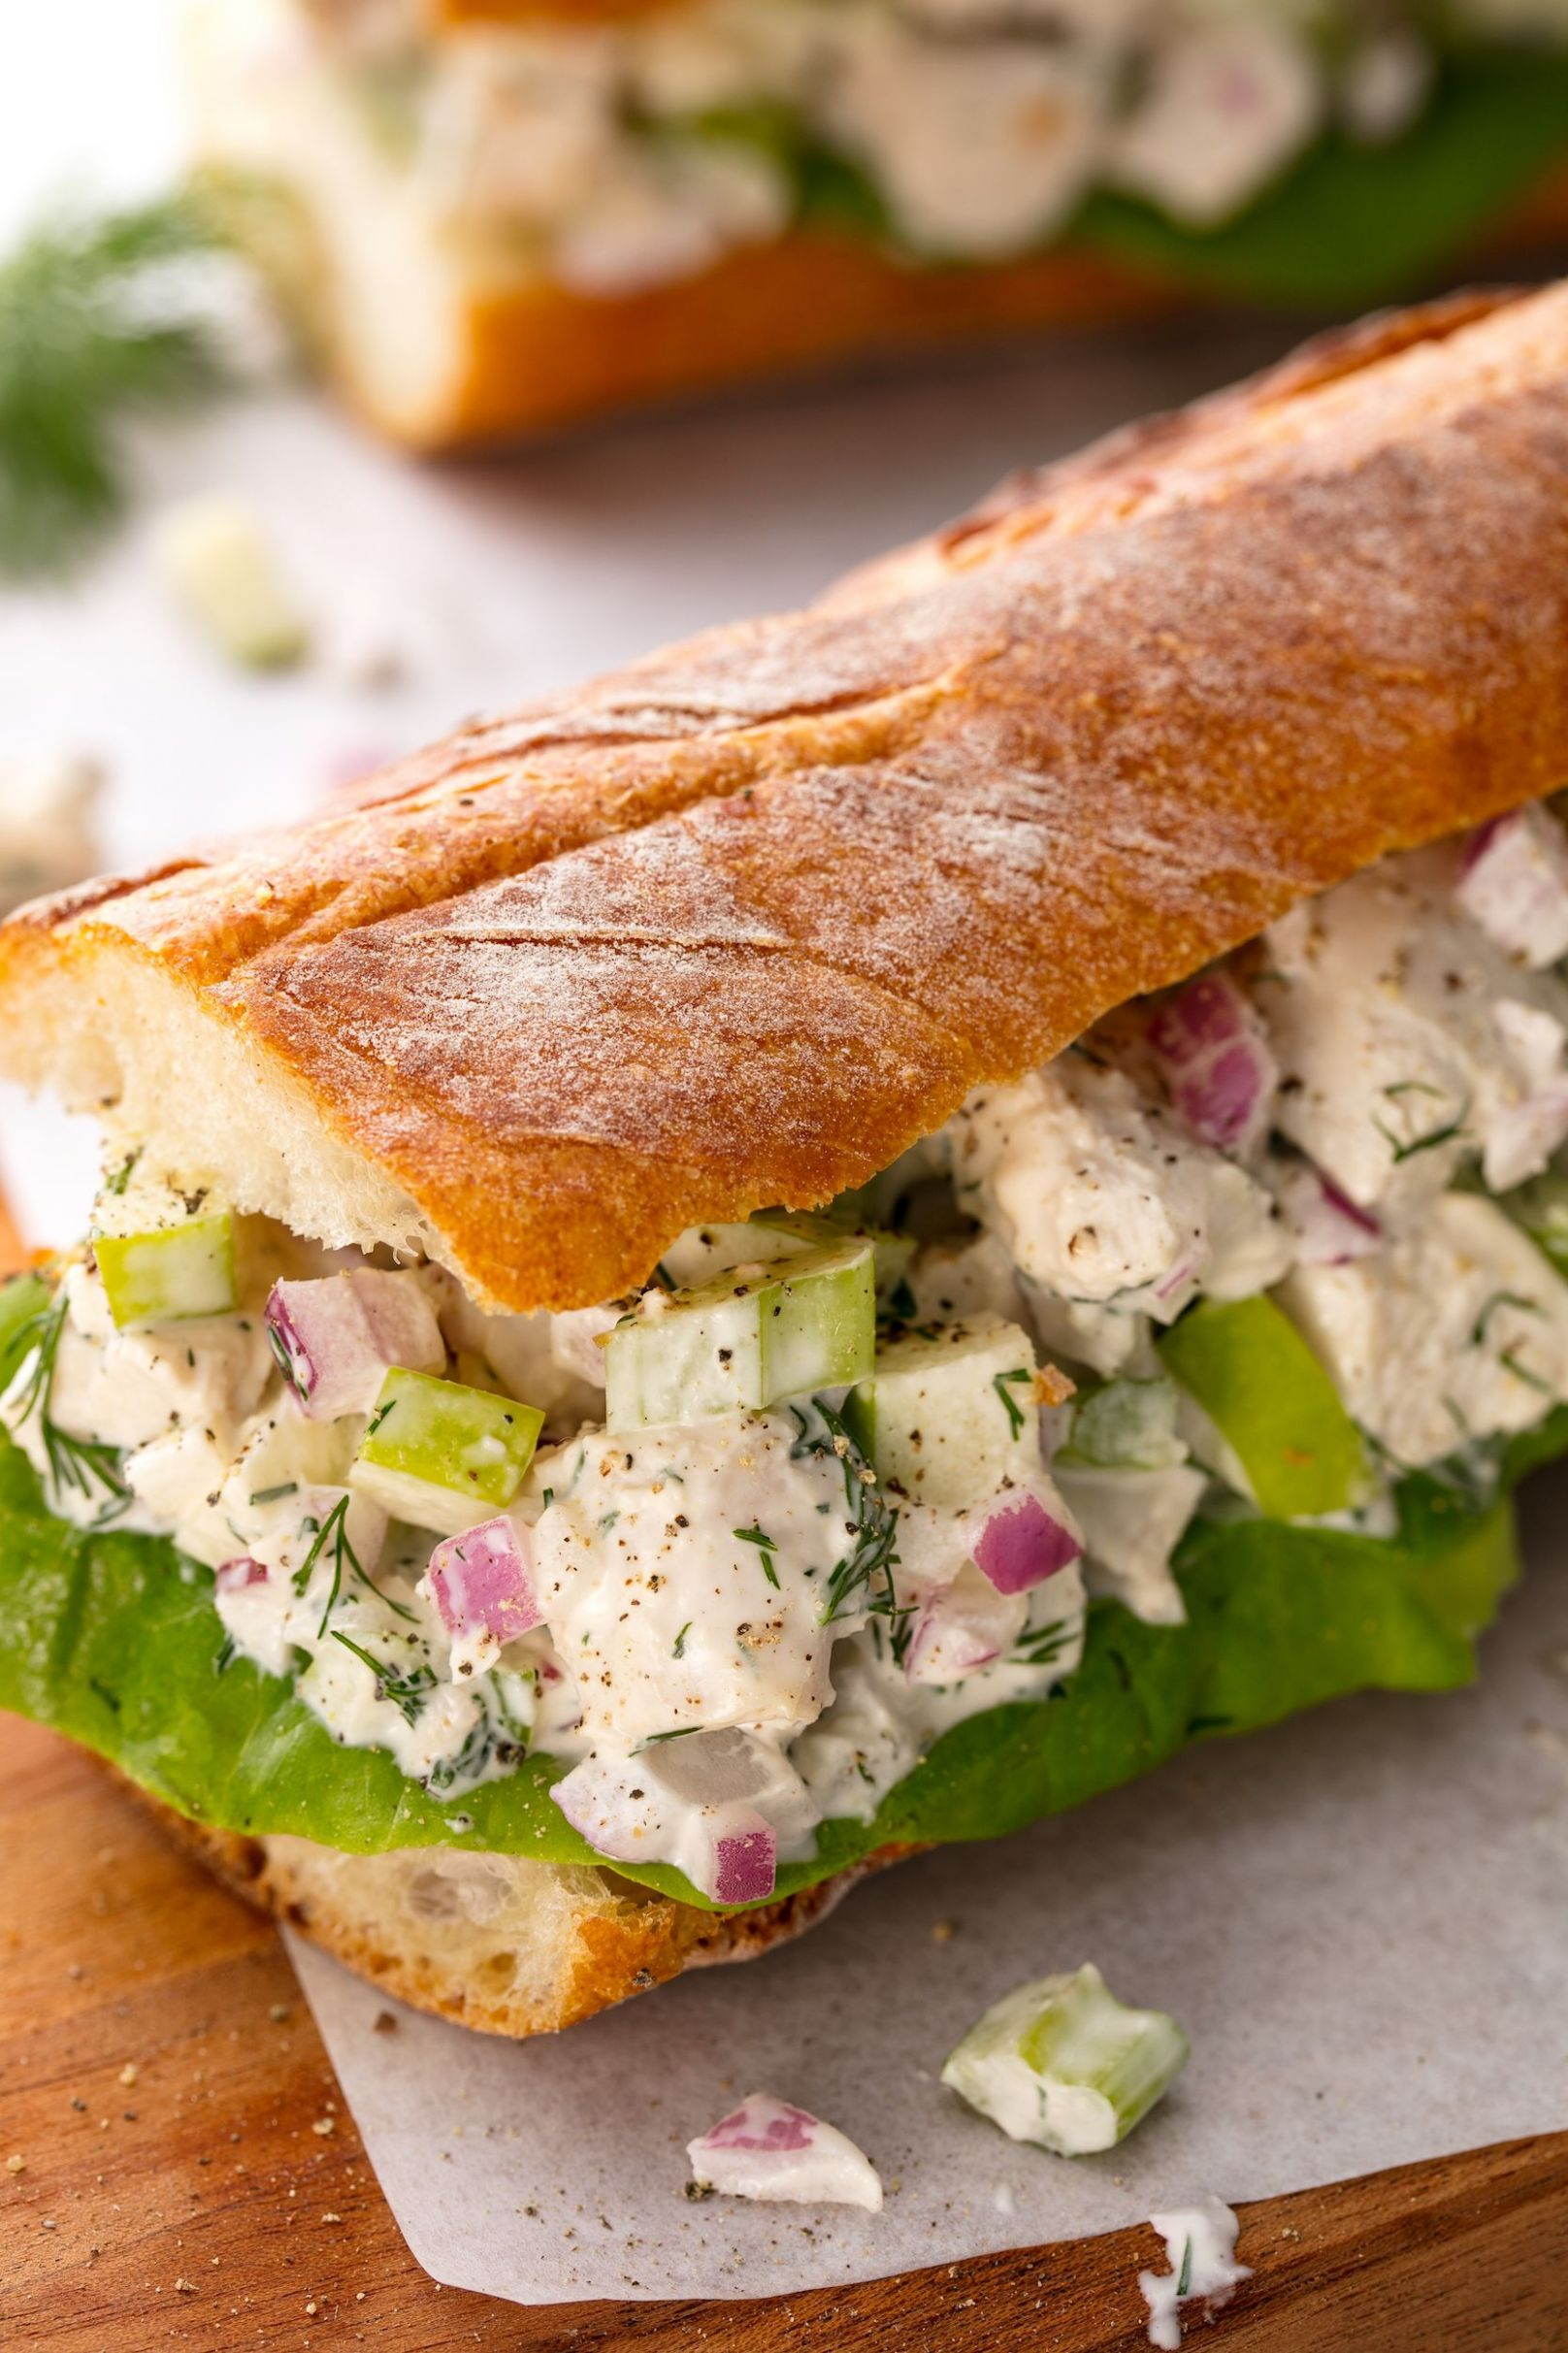 8+ Easy Sandwich Recipes for Lunch - Easy Lunch Sandwiches